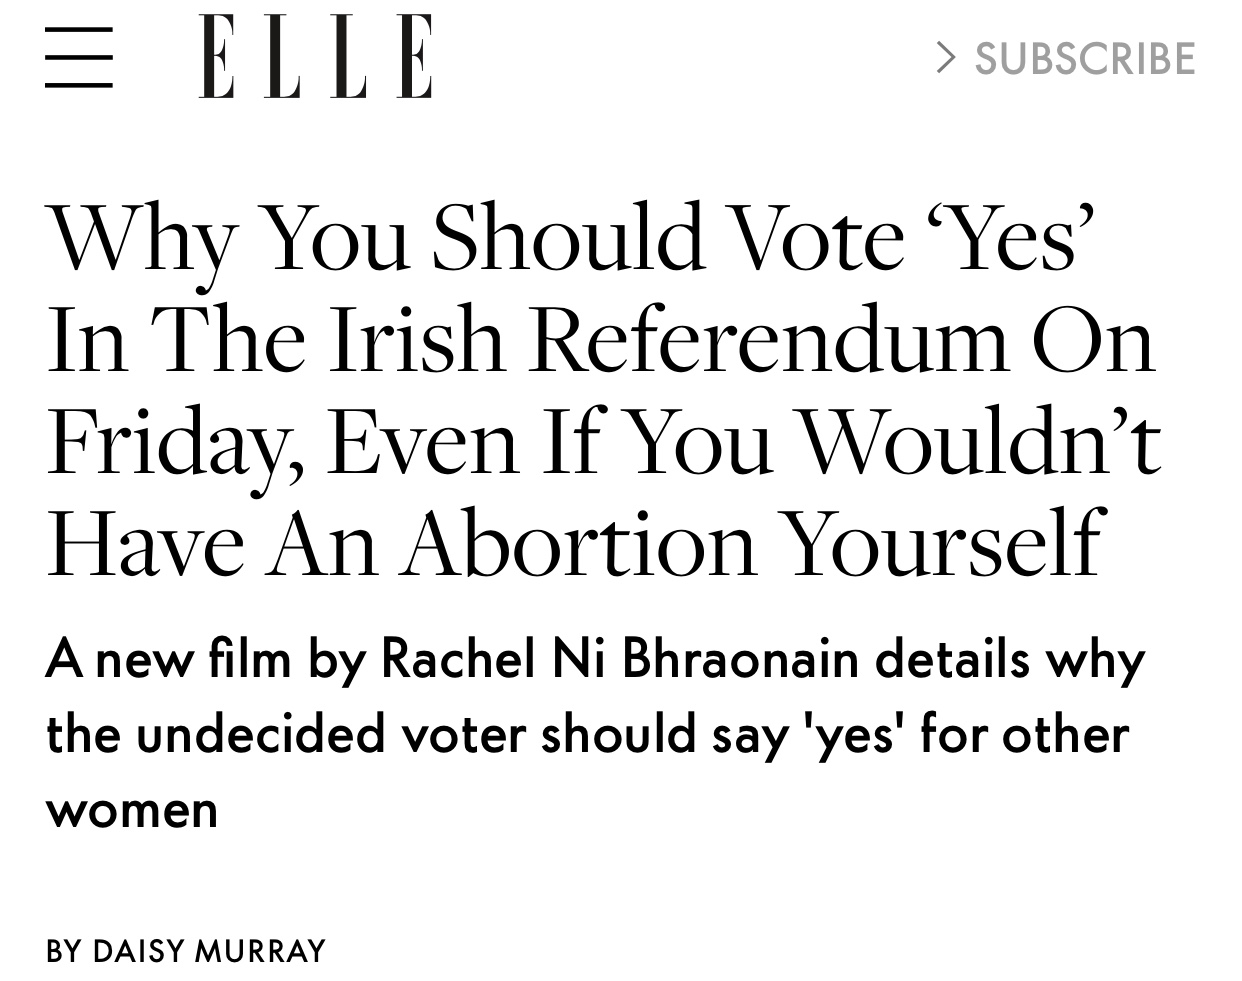 ELLE.COM   Featured as 'the undecided voter' in a short film directed and choreographed by Rachel Ní Bhraonáin, in response the Irish referendum to repeal the 8th amendment. Read more about it and watch the film via the link attached.     https://www.elle.com/uk/life-and-culture/a20869421/why-you-should-vote-yes-in-the-irish-referendum-on-friday/